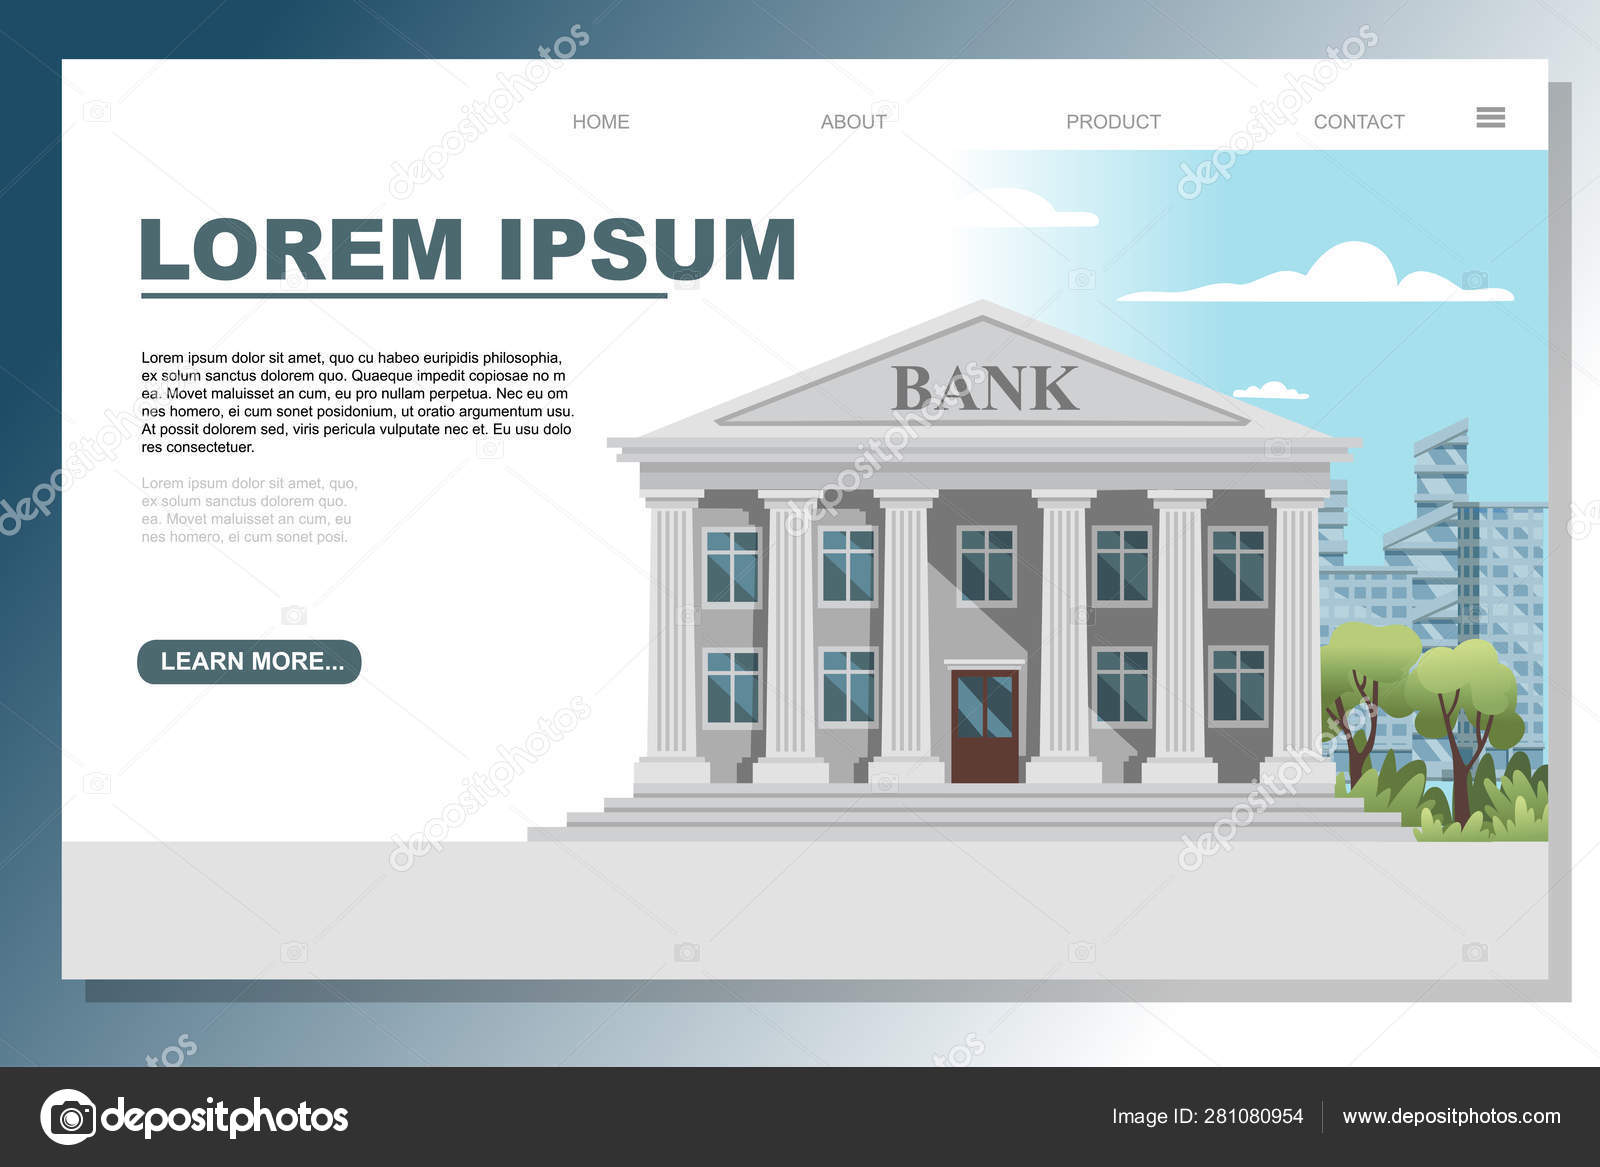 Retro Design Bank.Flat Design Retro Bank Building With Columns And Windows Vector